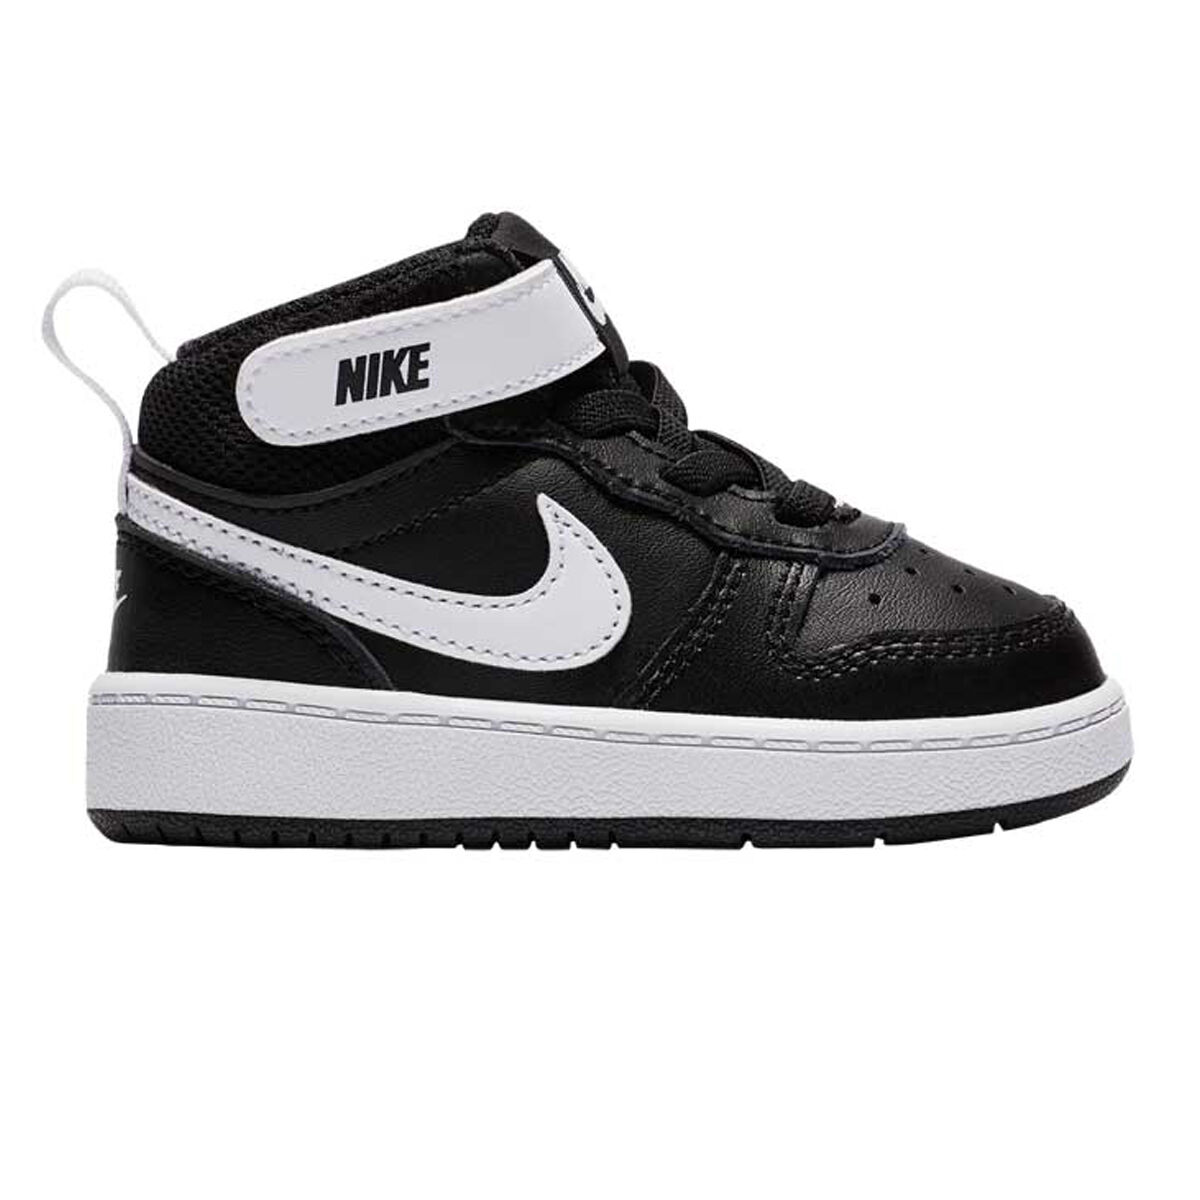 Nike Court Borough Mid 2 Toddlers Shoes